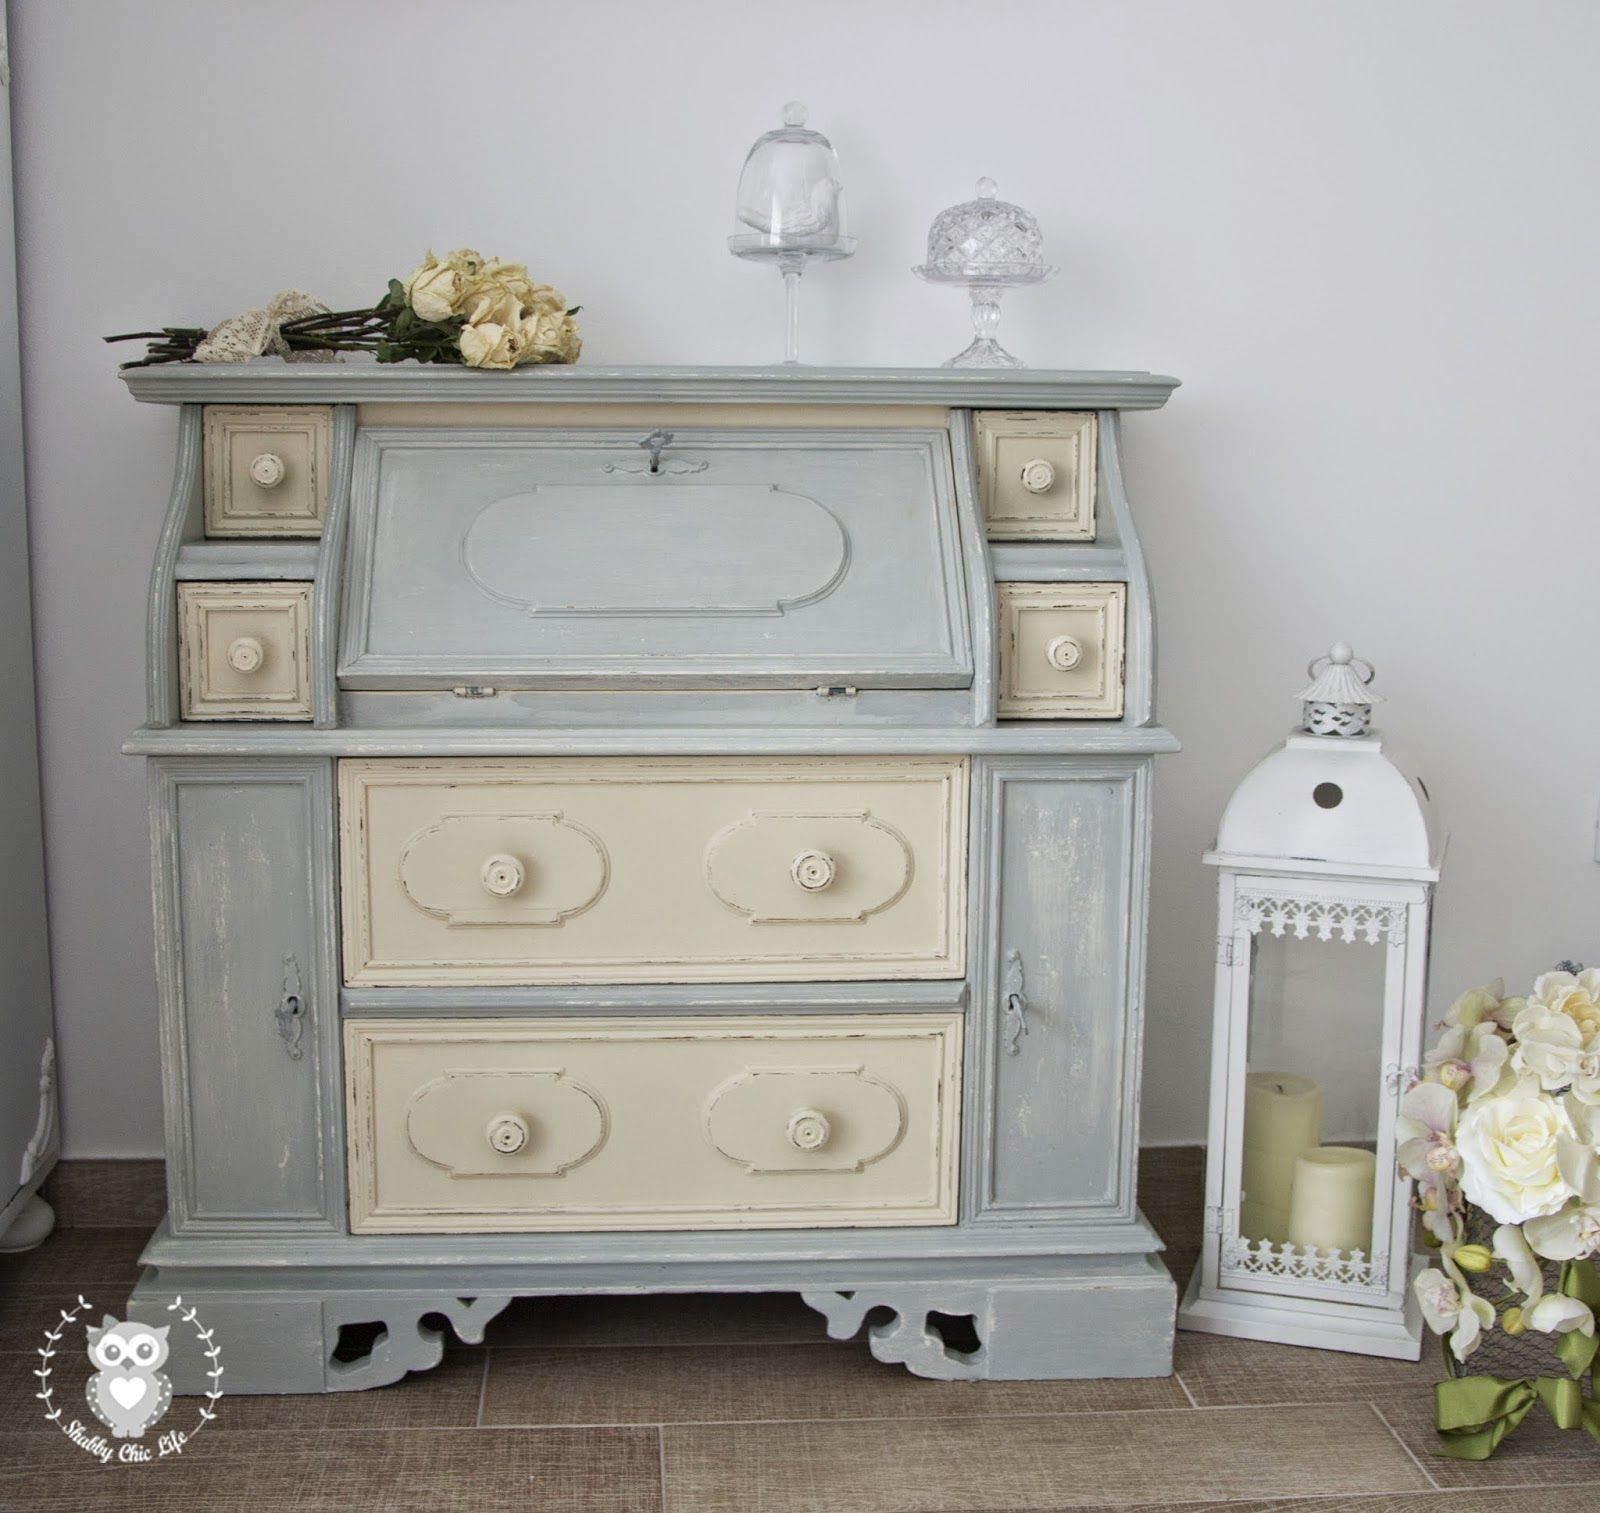 mobili bianchi decapati Google Search Shabby chic